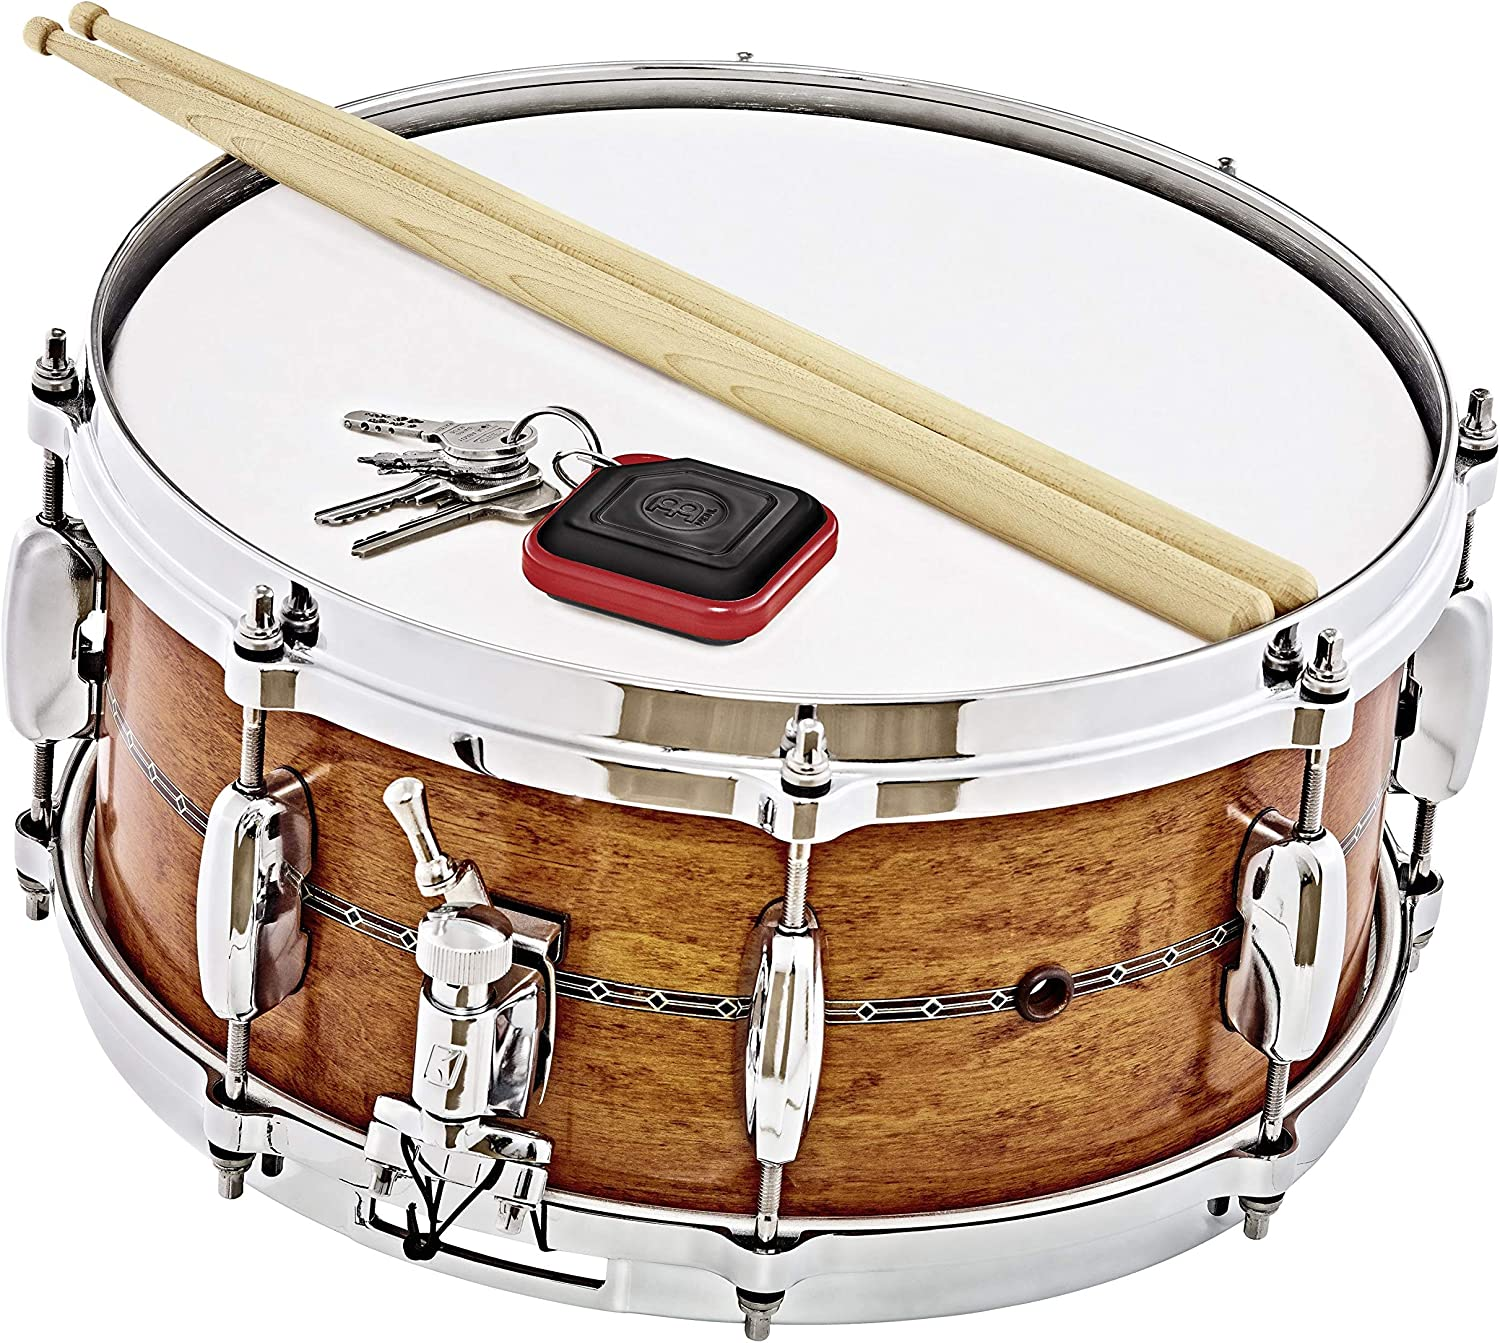 KRT-R Red-NOT MADE IN CHINA-Perfect for Jam Sessions and Acoustic Shows Meinl Key Ring Tambourine with Steel Jingles and Strudy ABS Plastic